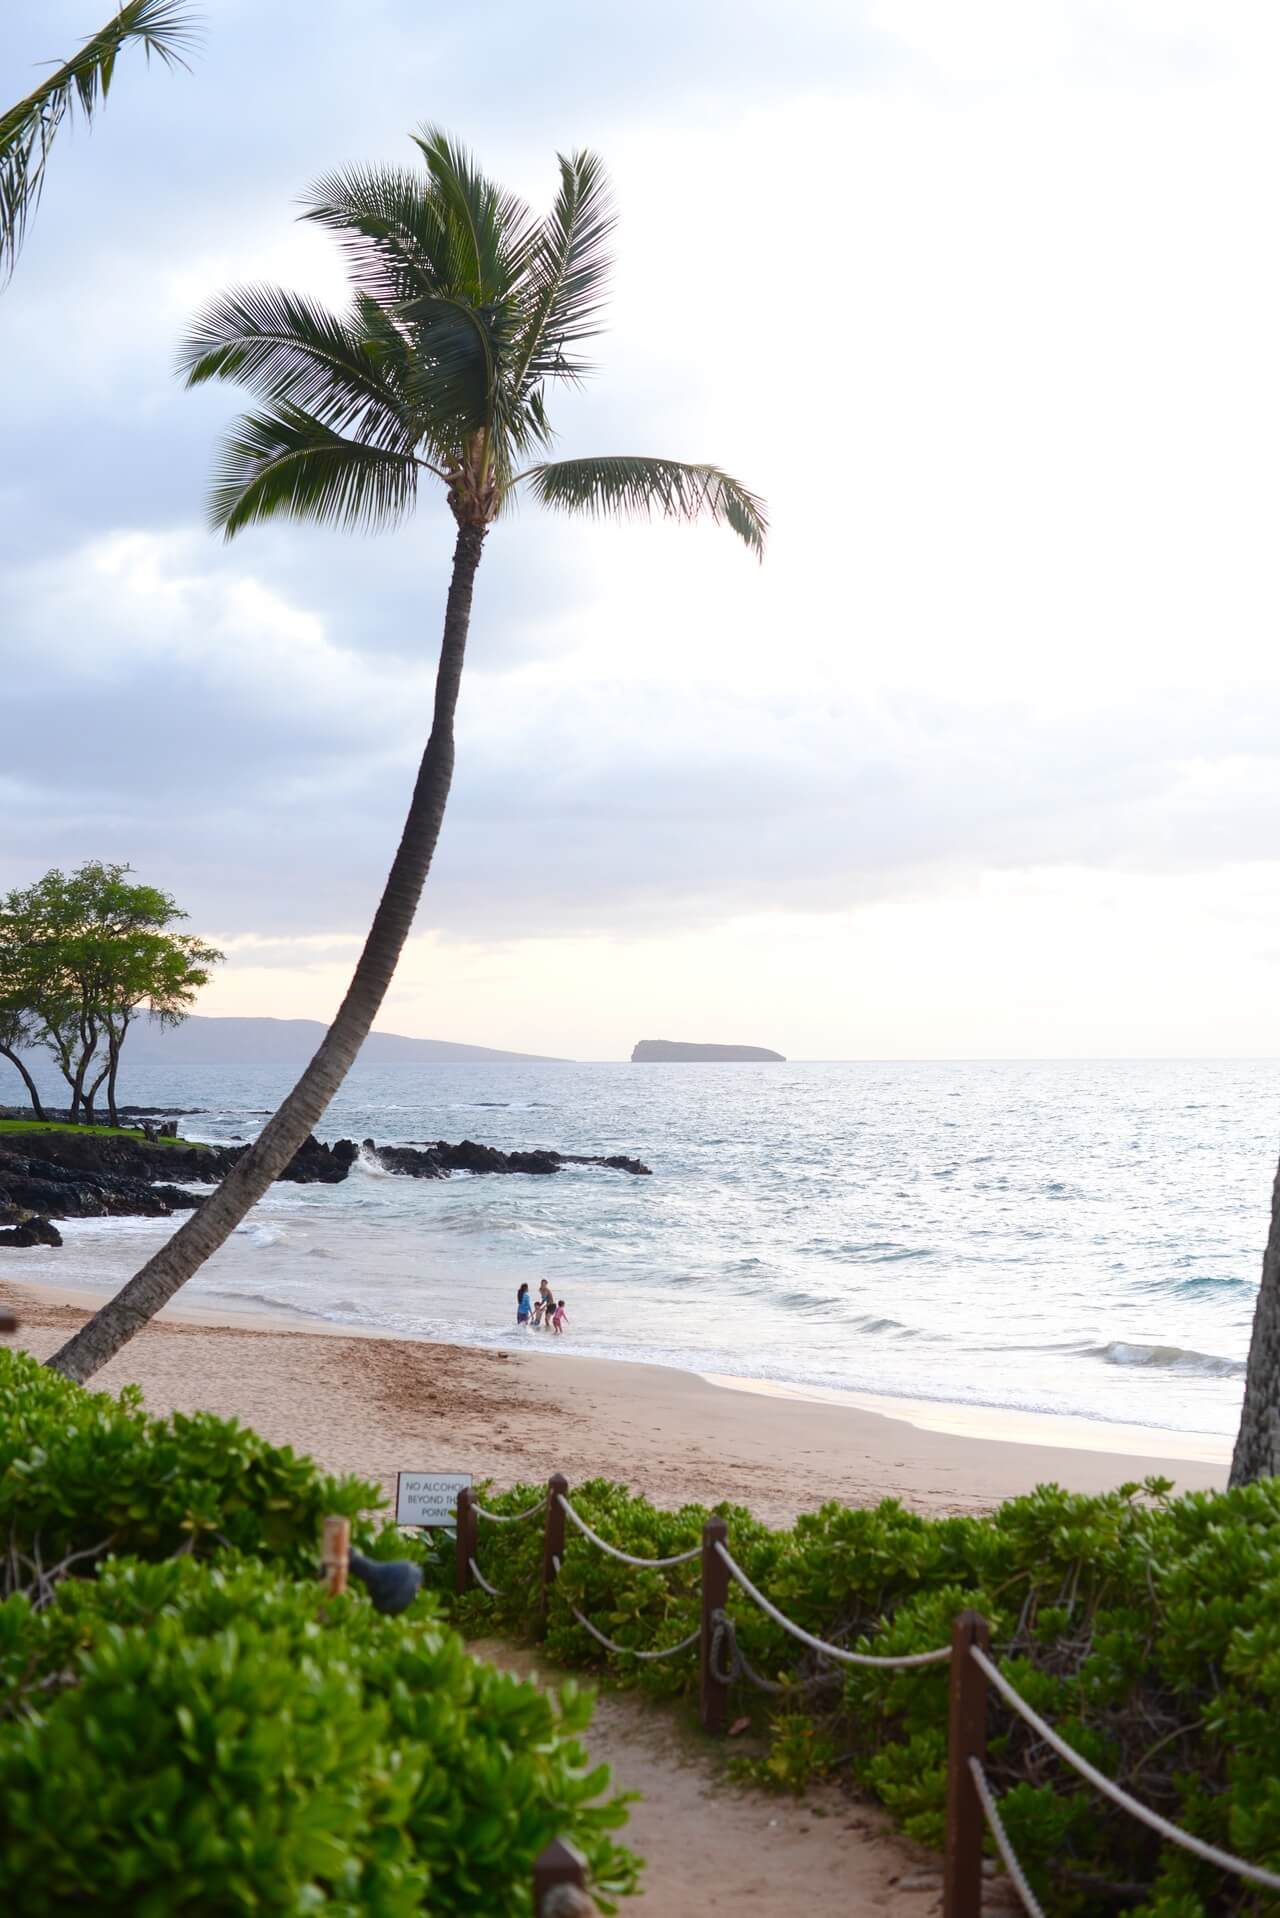 Maui Hawaii Blog Post with recommendations on where to stay, what to eat, and what to do